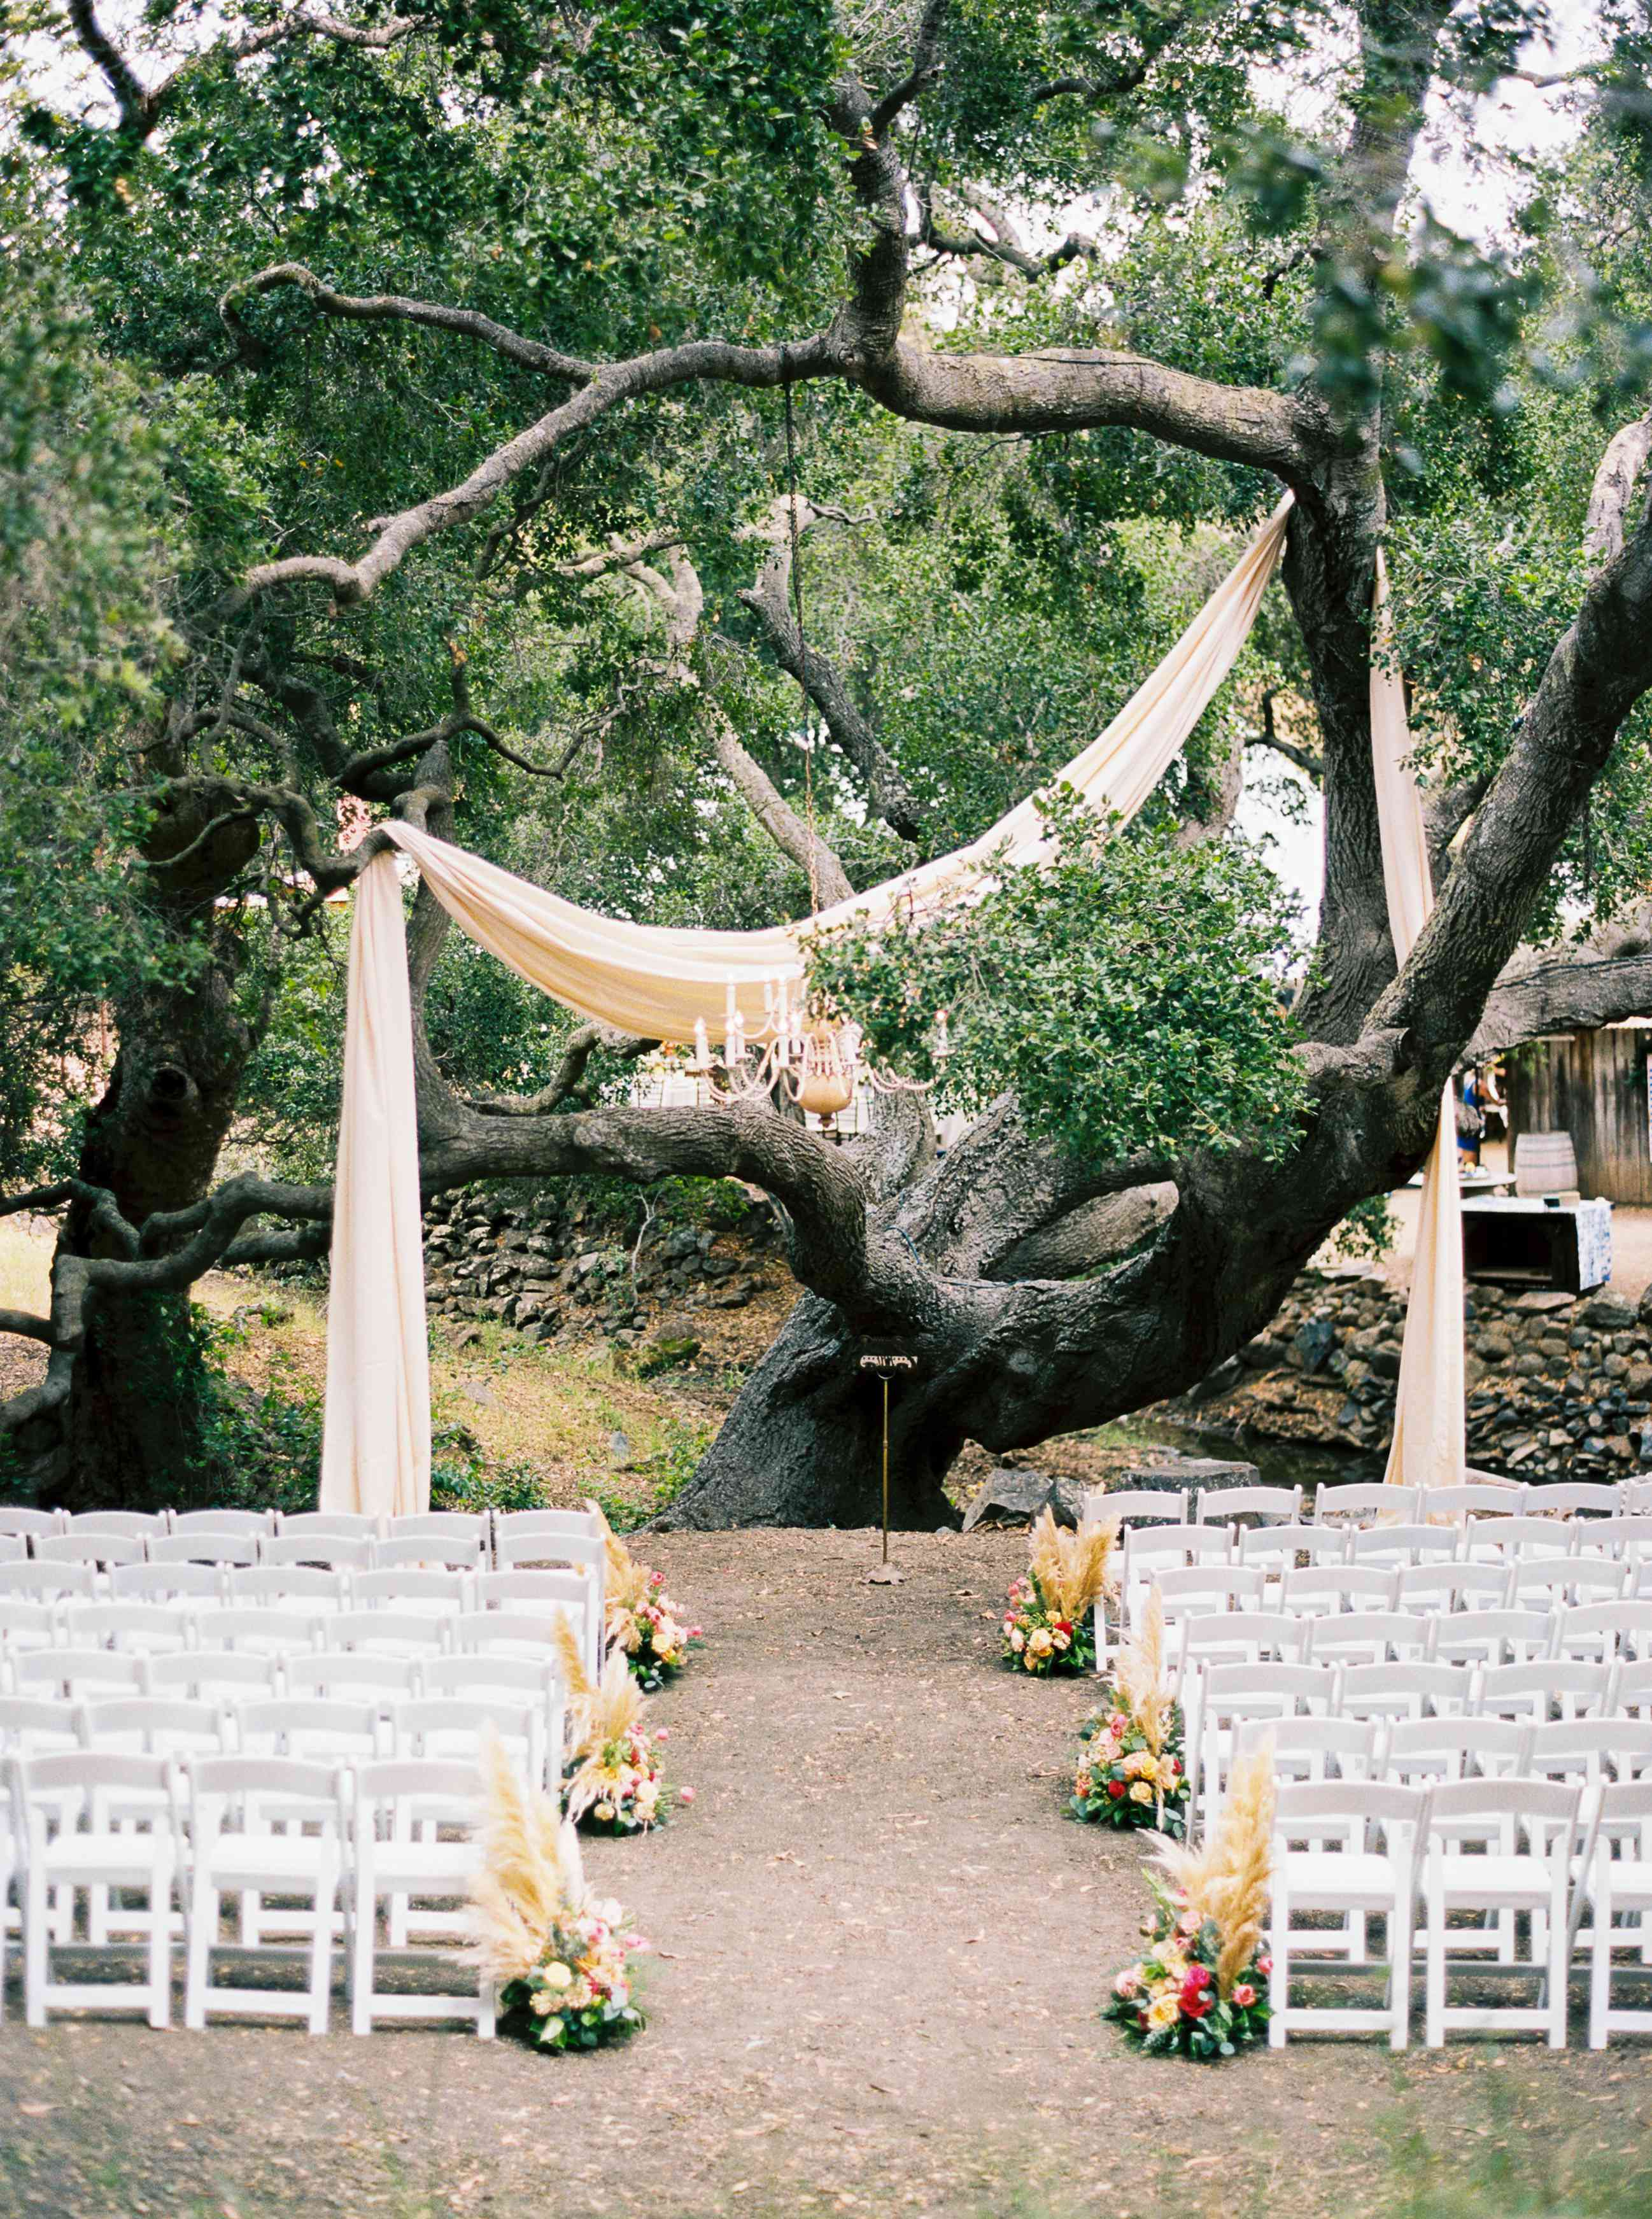 Wedding ceremony in front of large tree